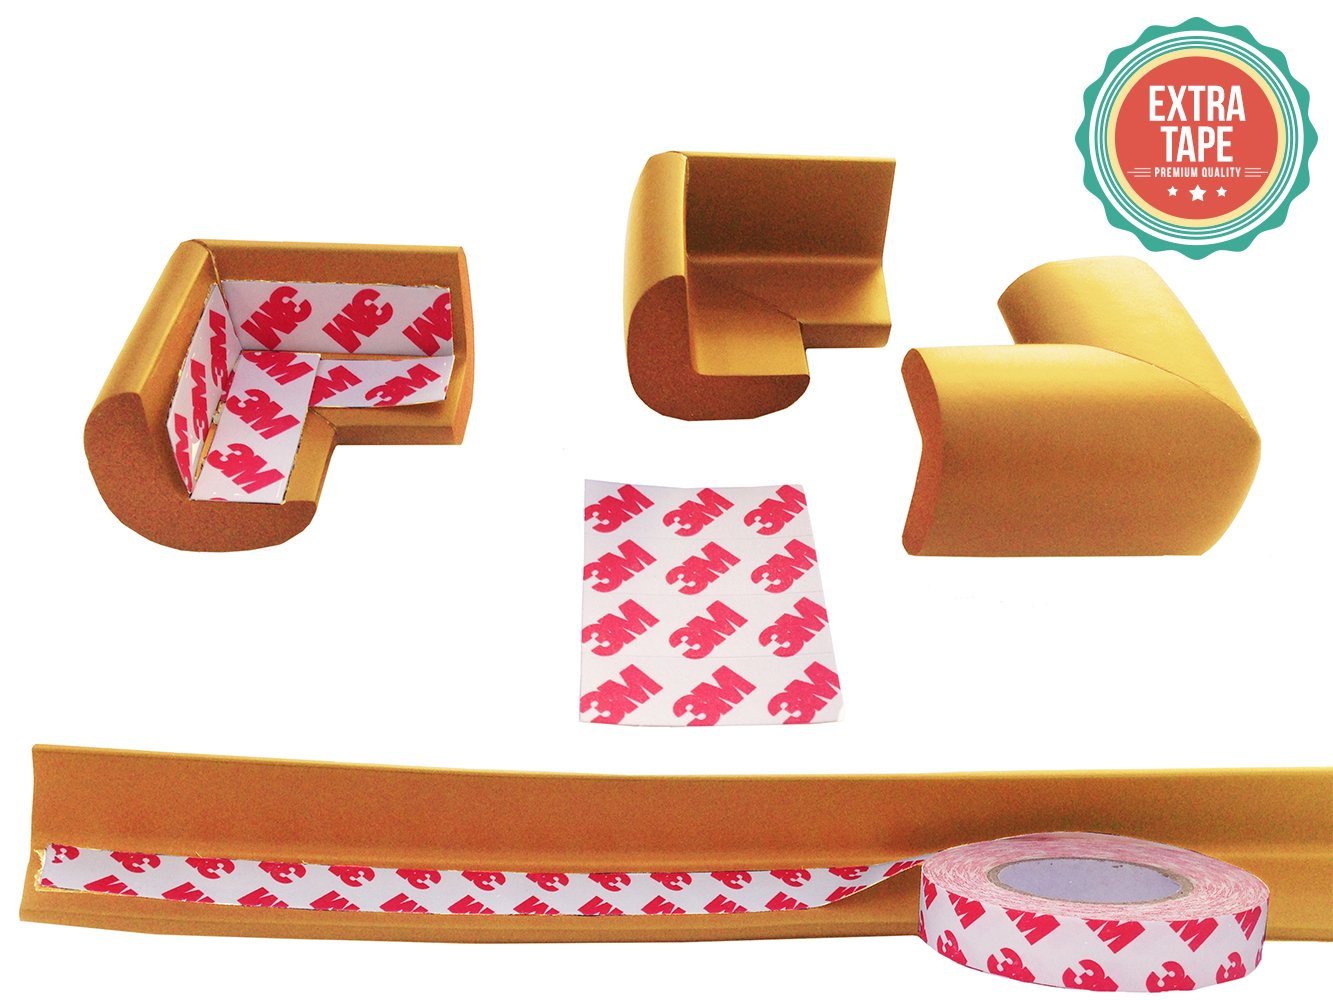 Extra Tape More Dense Corner Cushion Bumper to Absorb Impact Edge Guard /& Corner Bumpers for Baby Proofing From Bow-Tiger- Easy to Install Extra Long Edge Protector Protect Your Loved Ones Today!